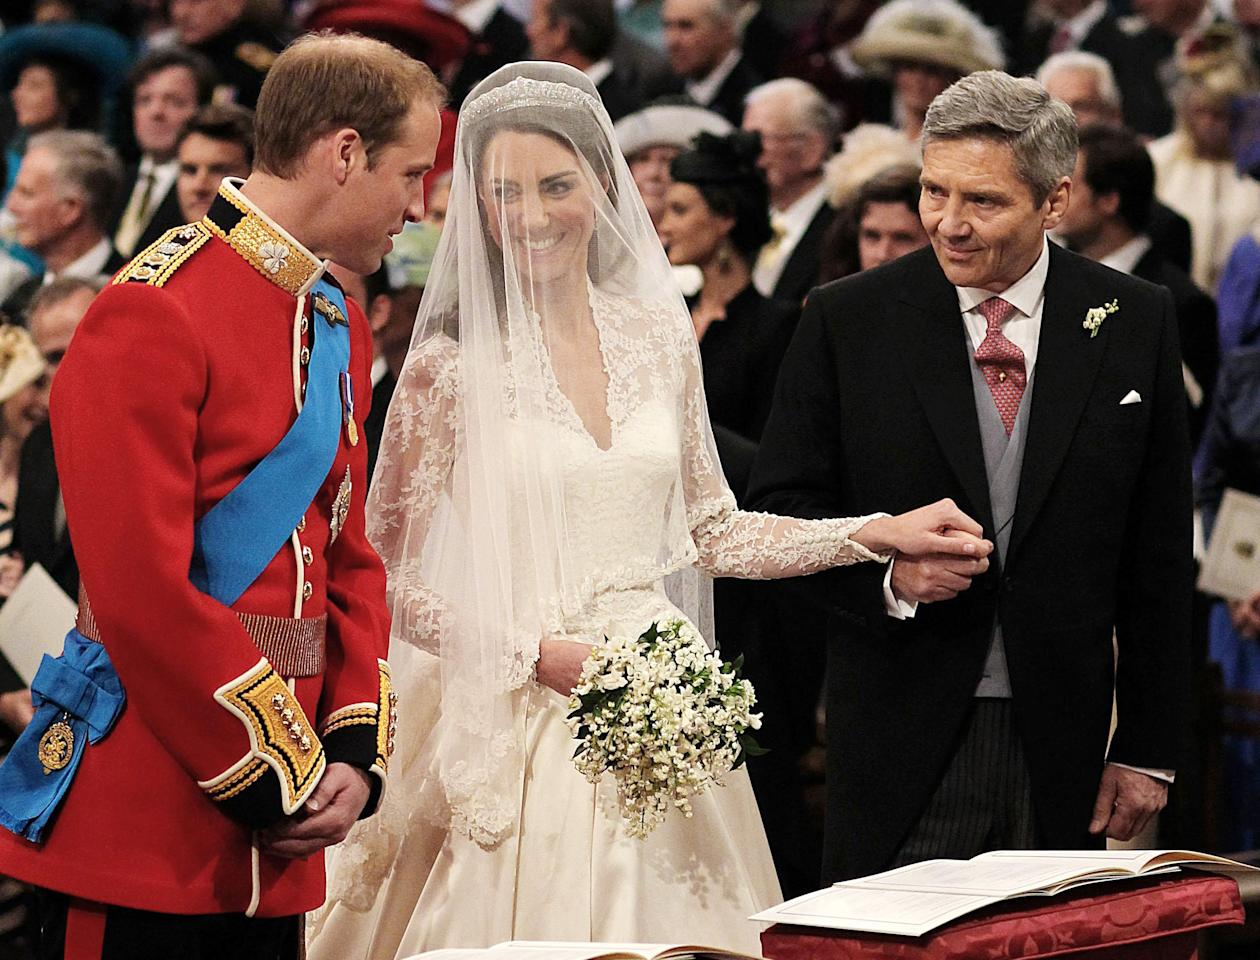 Prince William greets Kate Middleton as she arrives at the alter with her father Michael Middleton, prior to their marriage in London's Westminster Abbey, Friday April 29 2011.